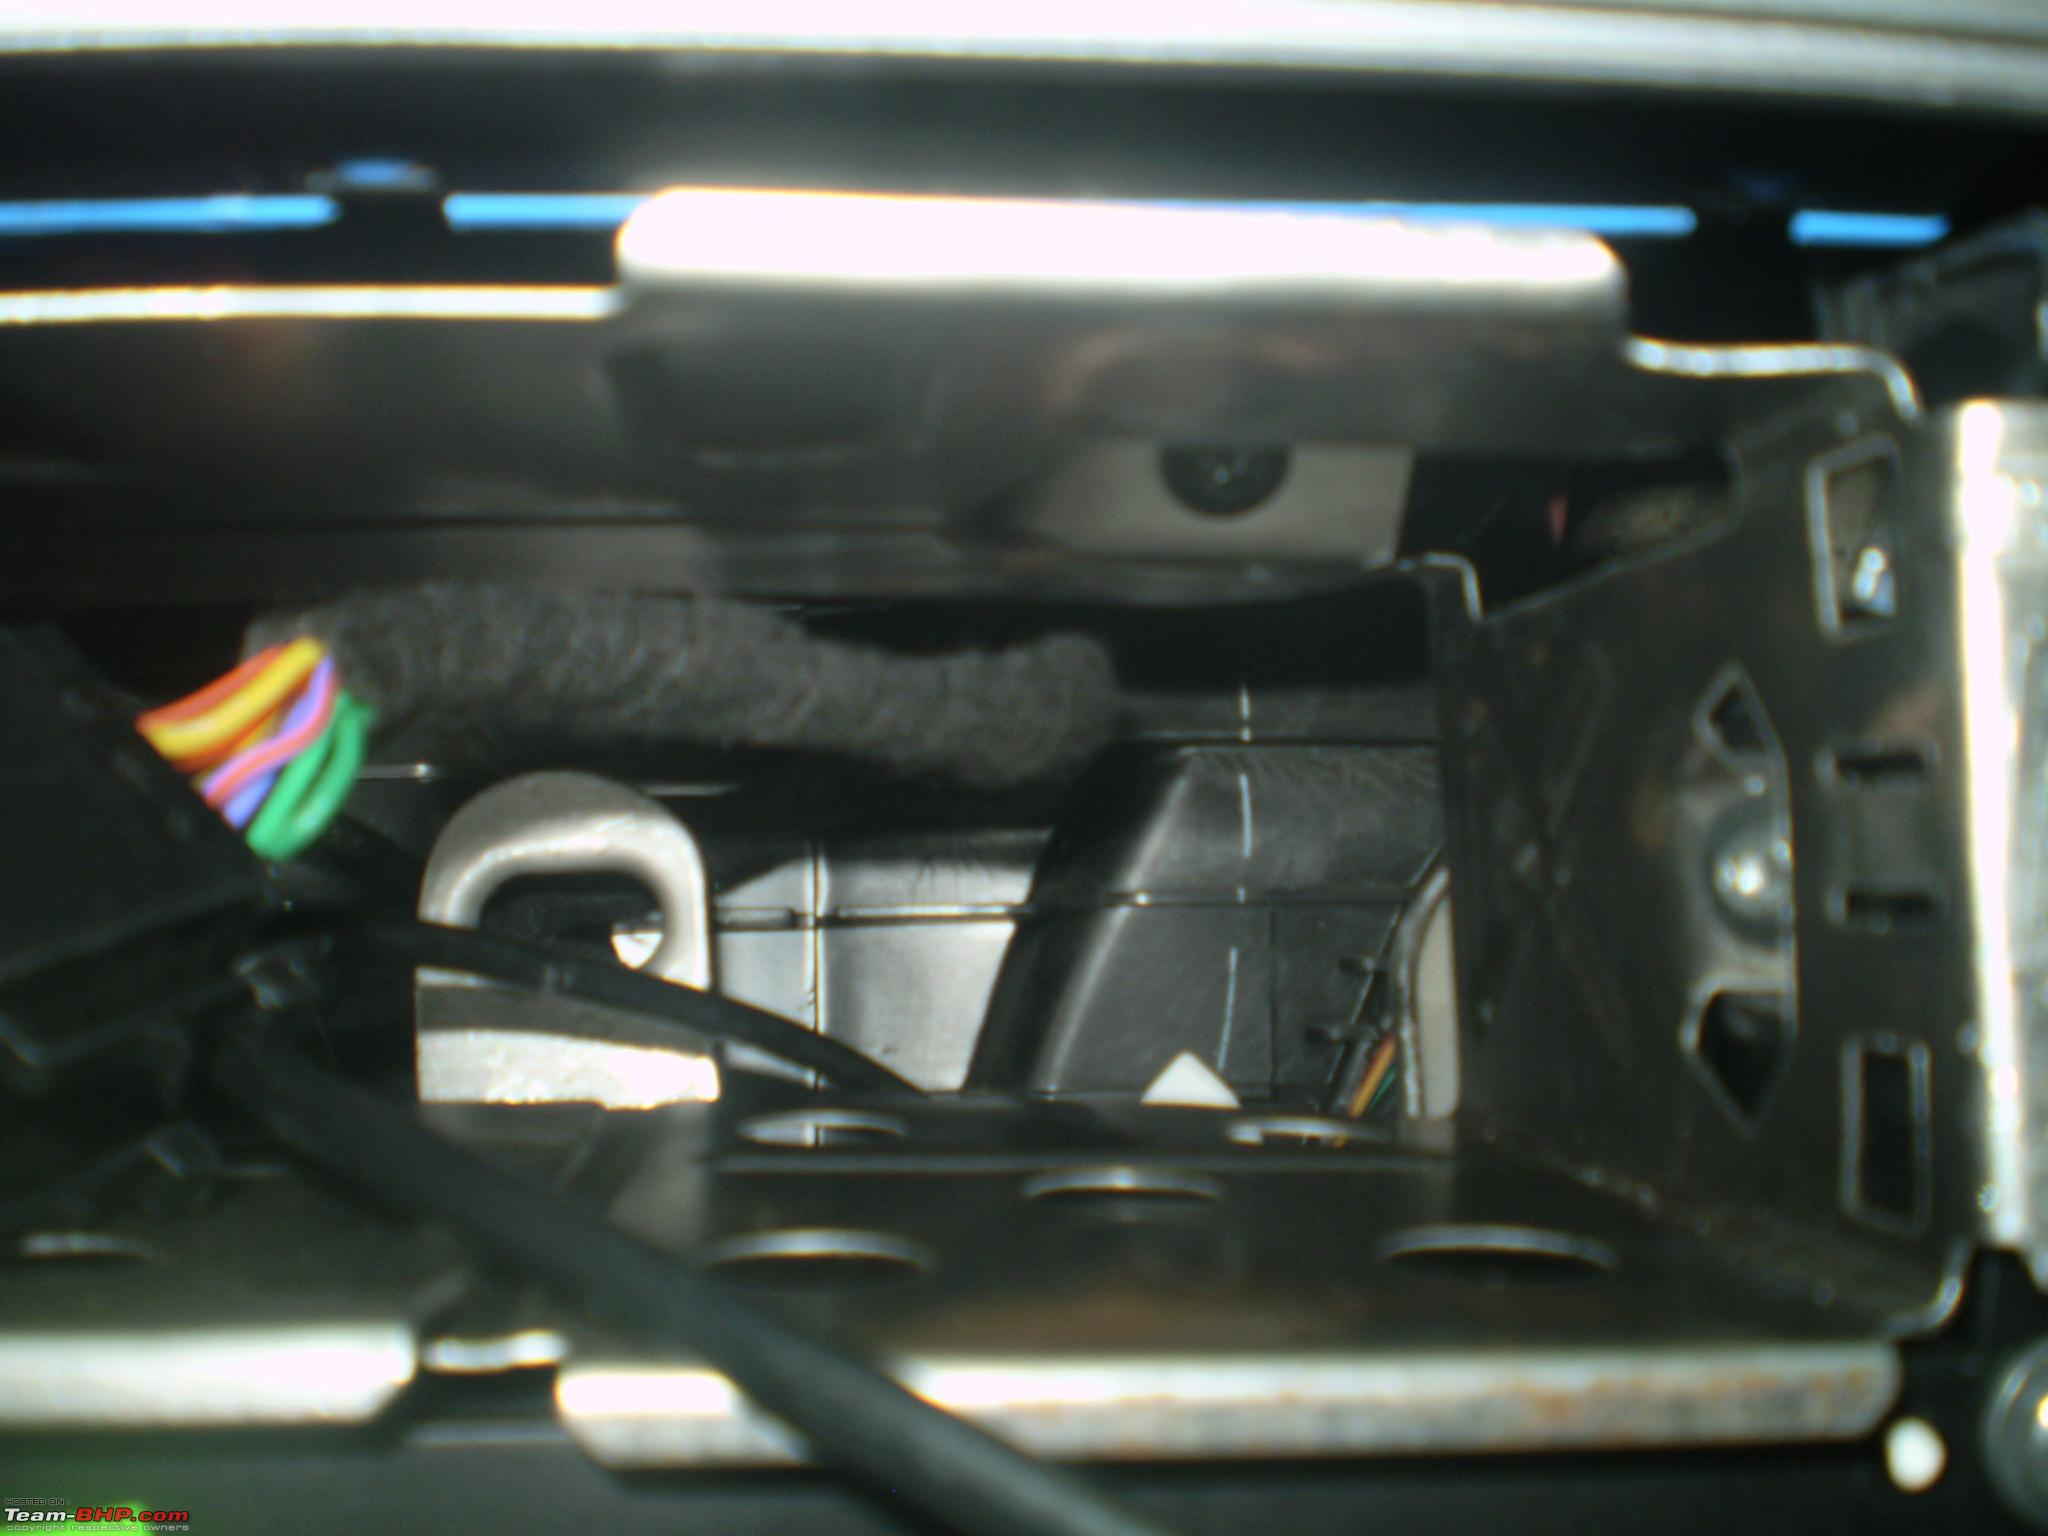 Pics Details Upgraded My Punto Headunit Team Bhp Toyota Jbl Amplifier Wiring Diagram Cagescrew